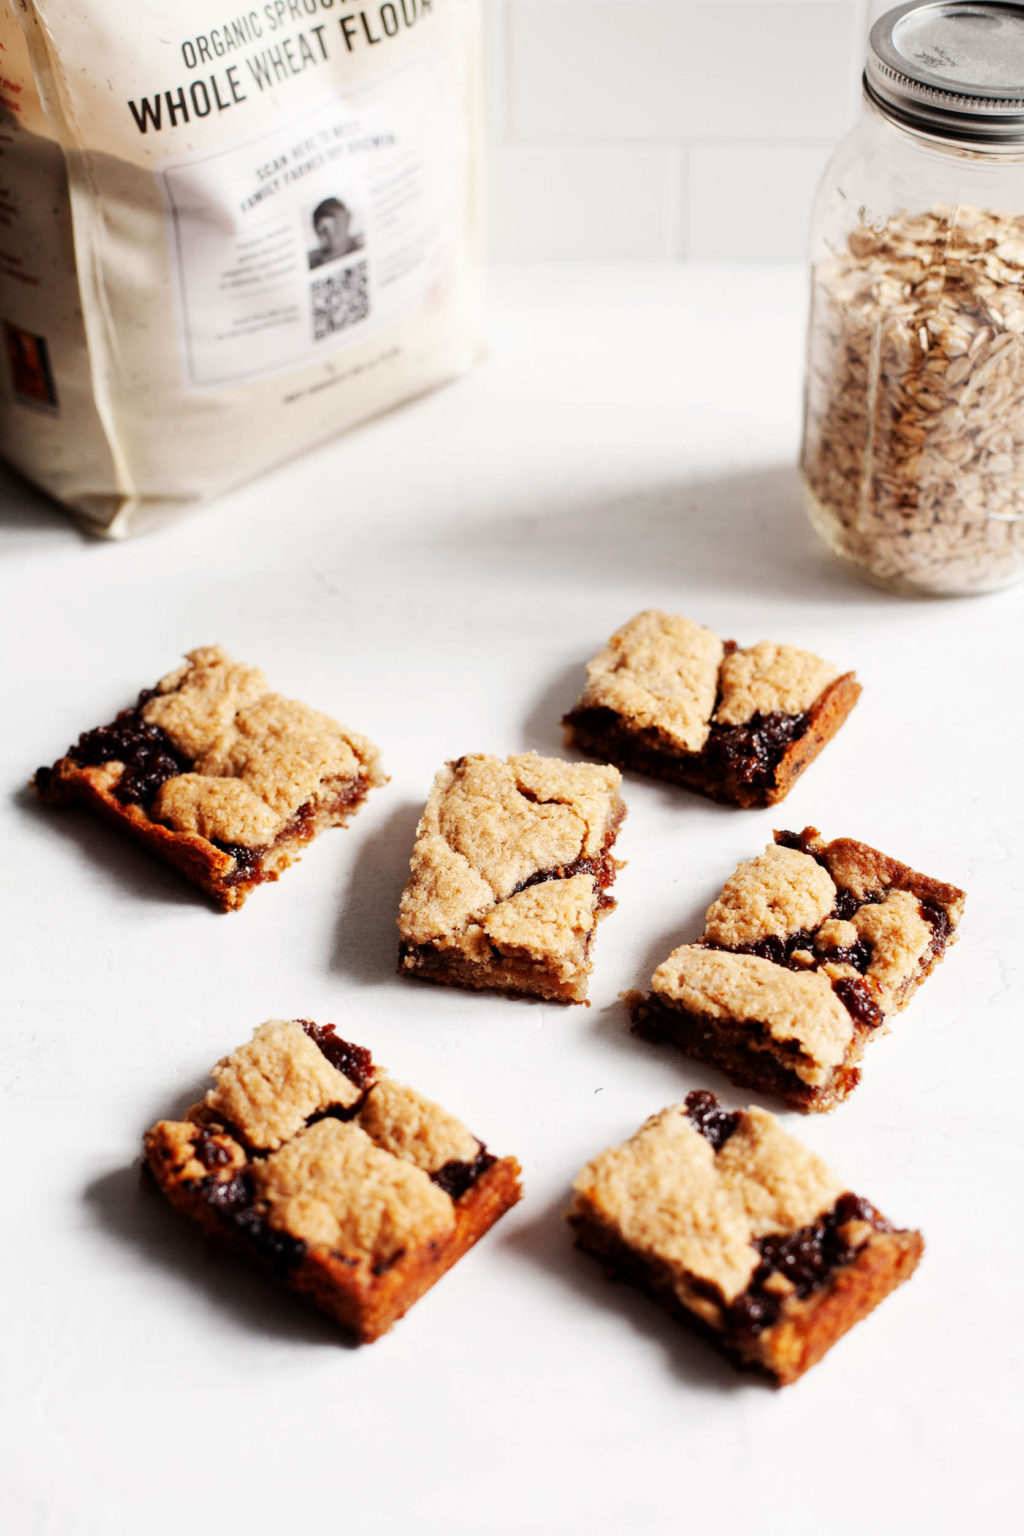 Freshly sliced snack bars have recently been prepared with whole wheat flour and oatmeal.